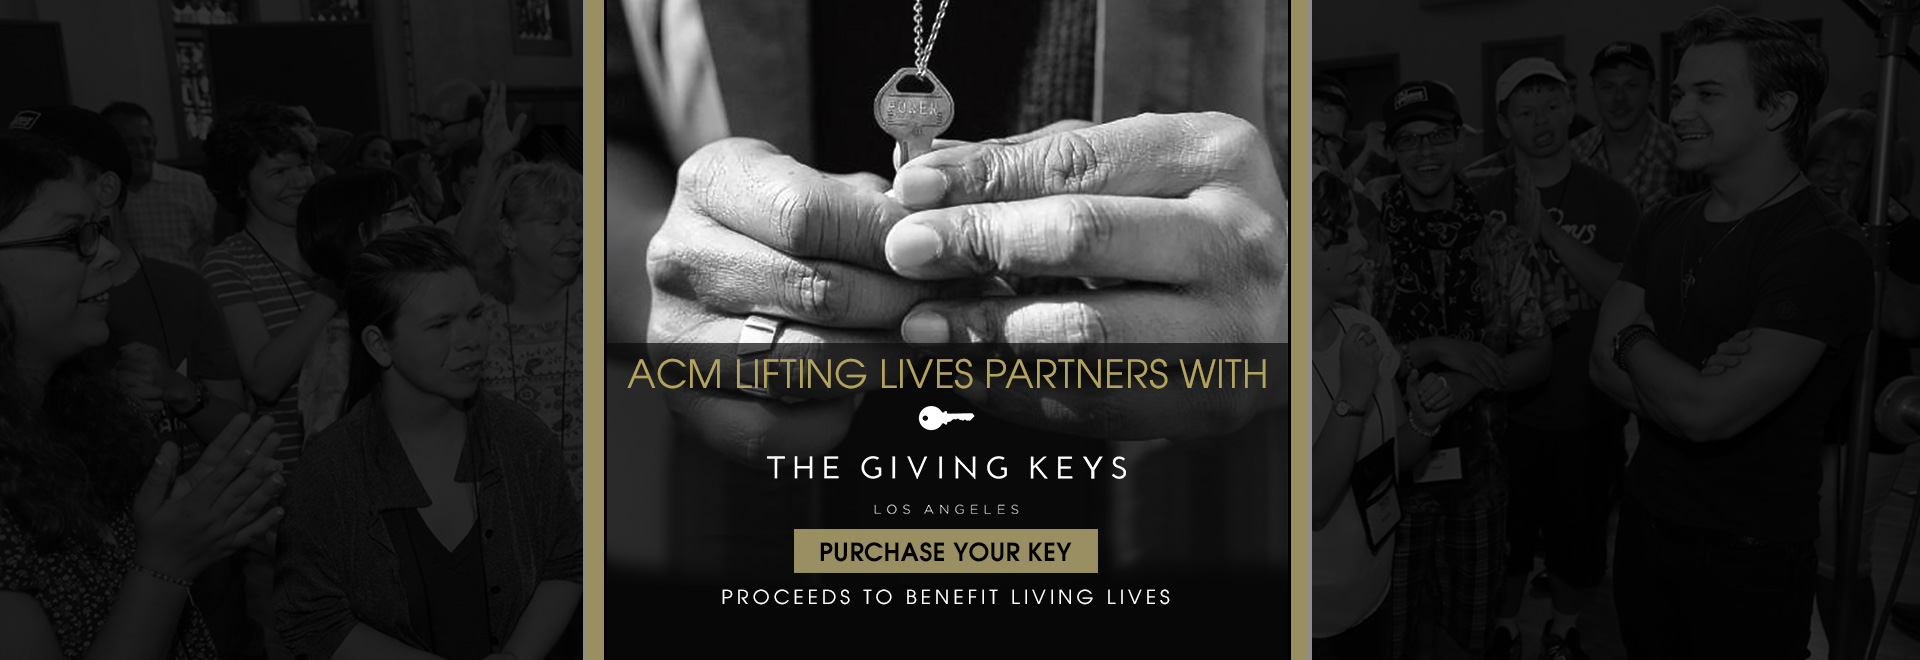 ACM Lifting Lives Partners With